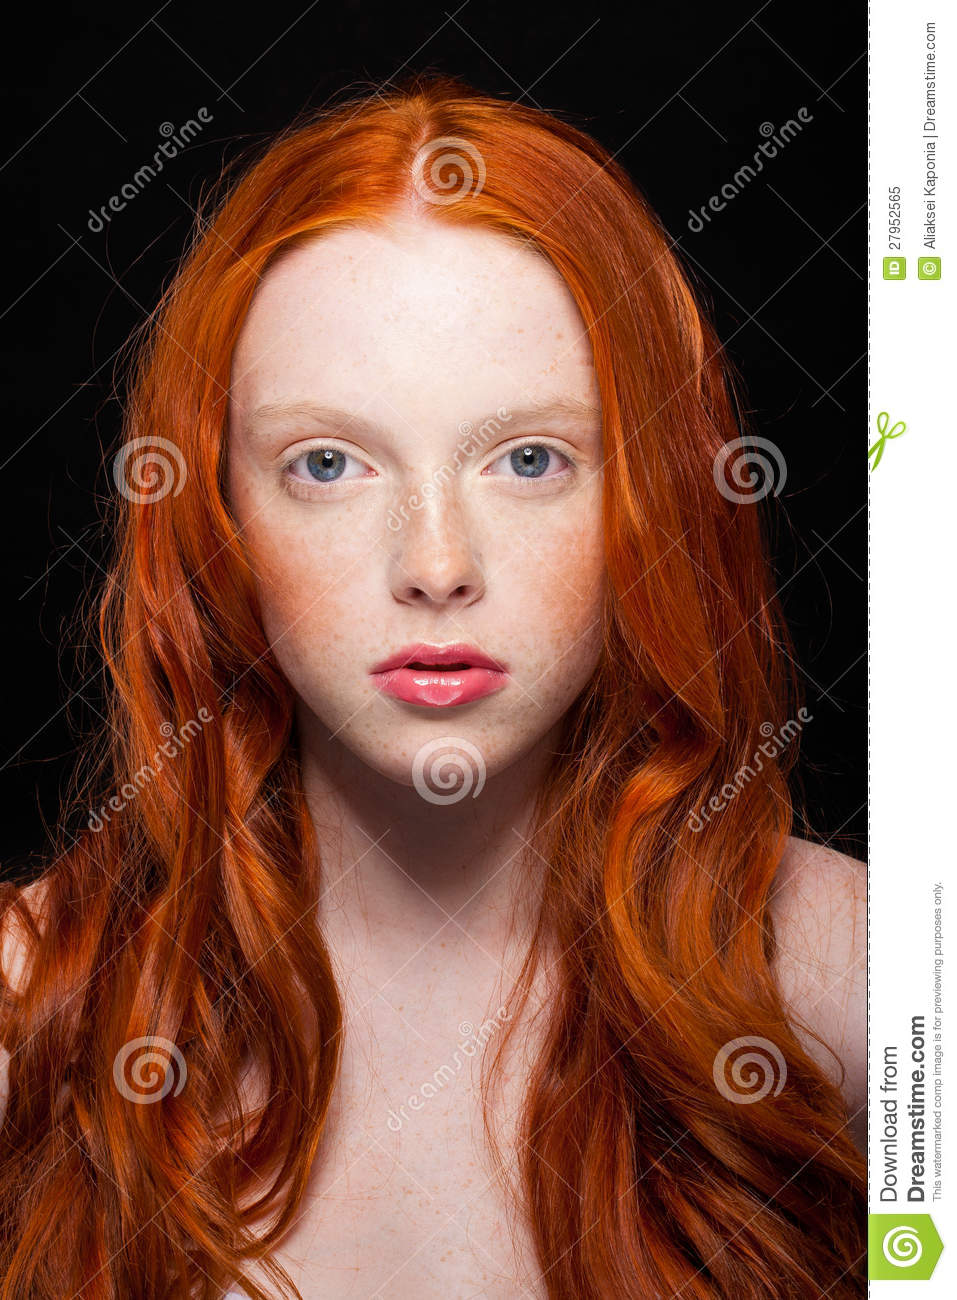 Wavy Red Hair Stock Image Image Of Girl Closeup